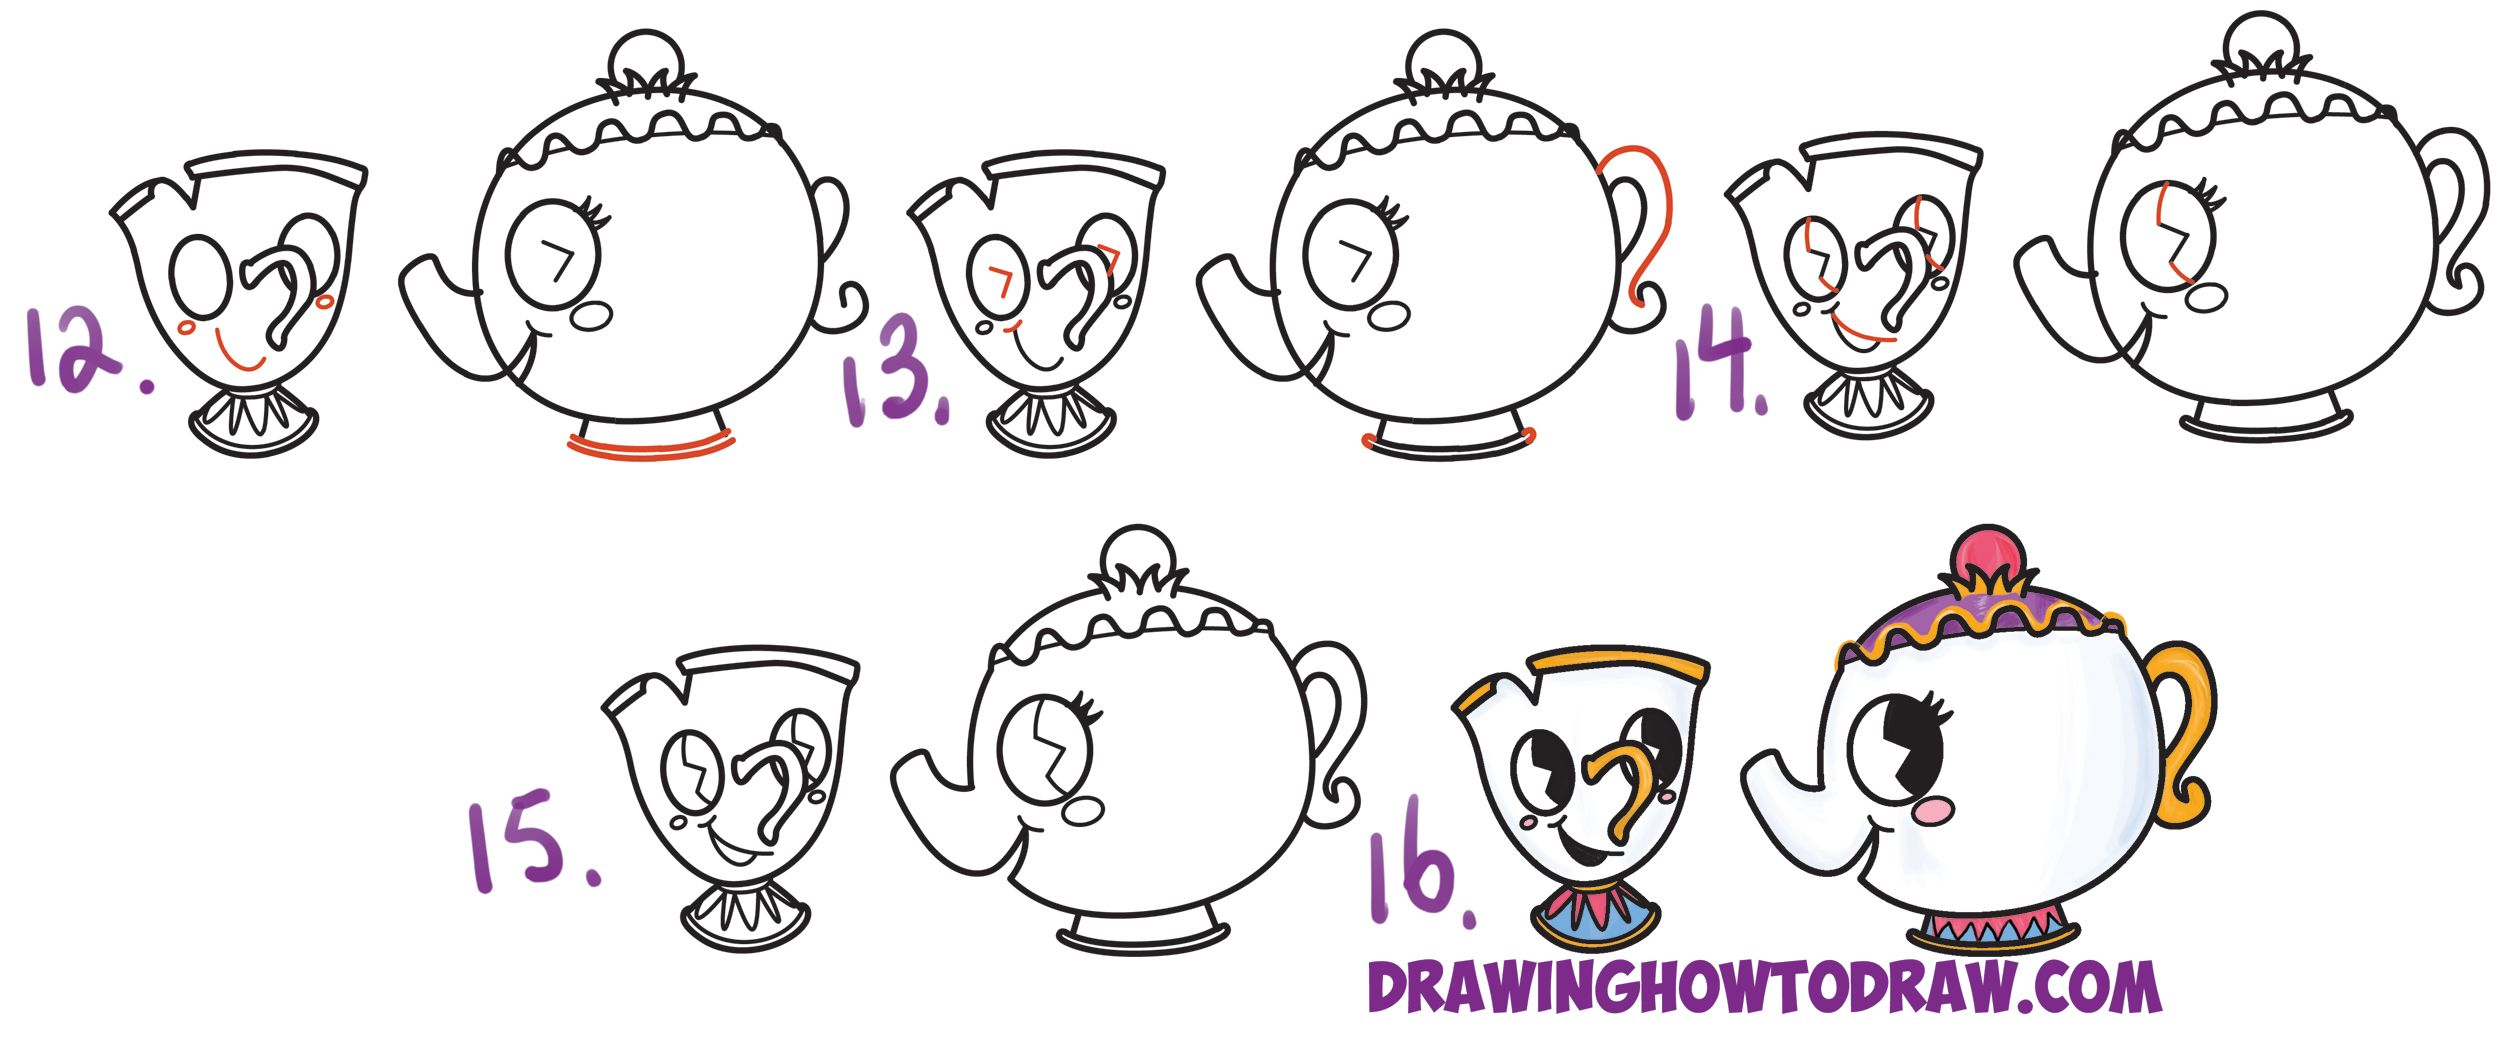 How To Draw Cute Kawaii Chibi Mrs Potts And Chip From